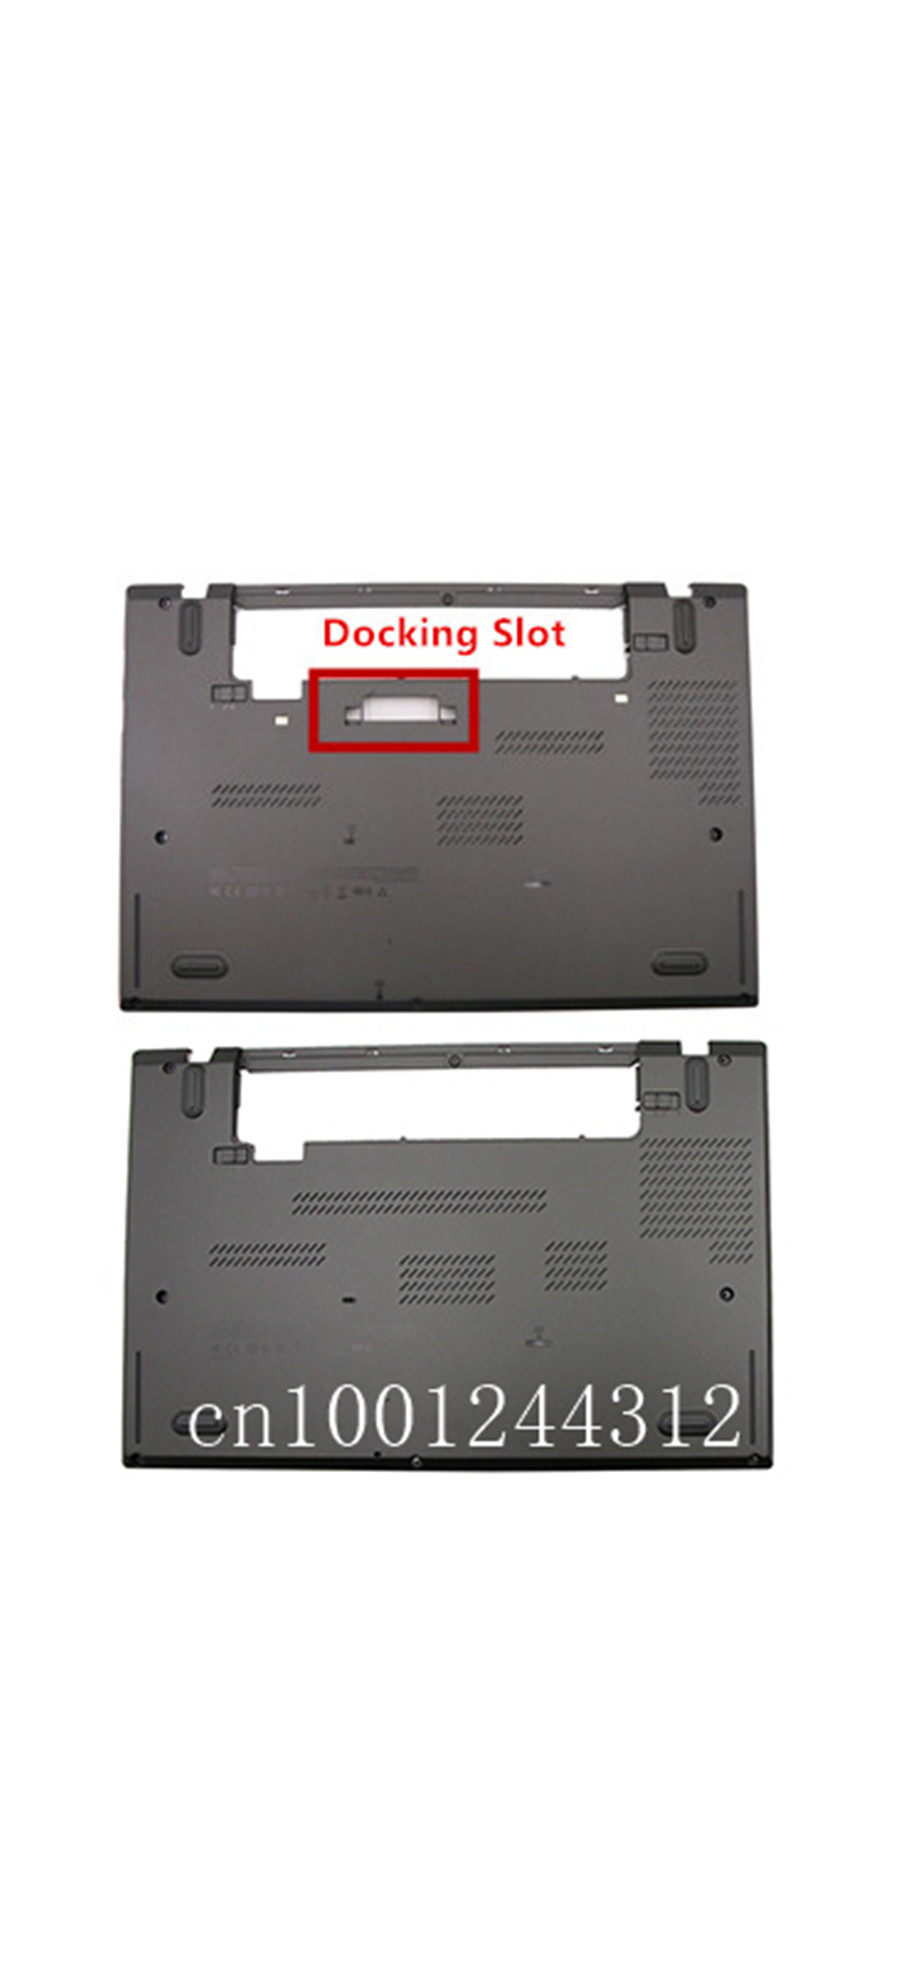 New Original For Lenovo Thinkpad <font><b>T440S</b></font> T450S Lower Bottom Base Case <font><b>Cover</b></font> w/Docking Slot 00PA886 wo/Docking Slot 00PA887 image